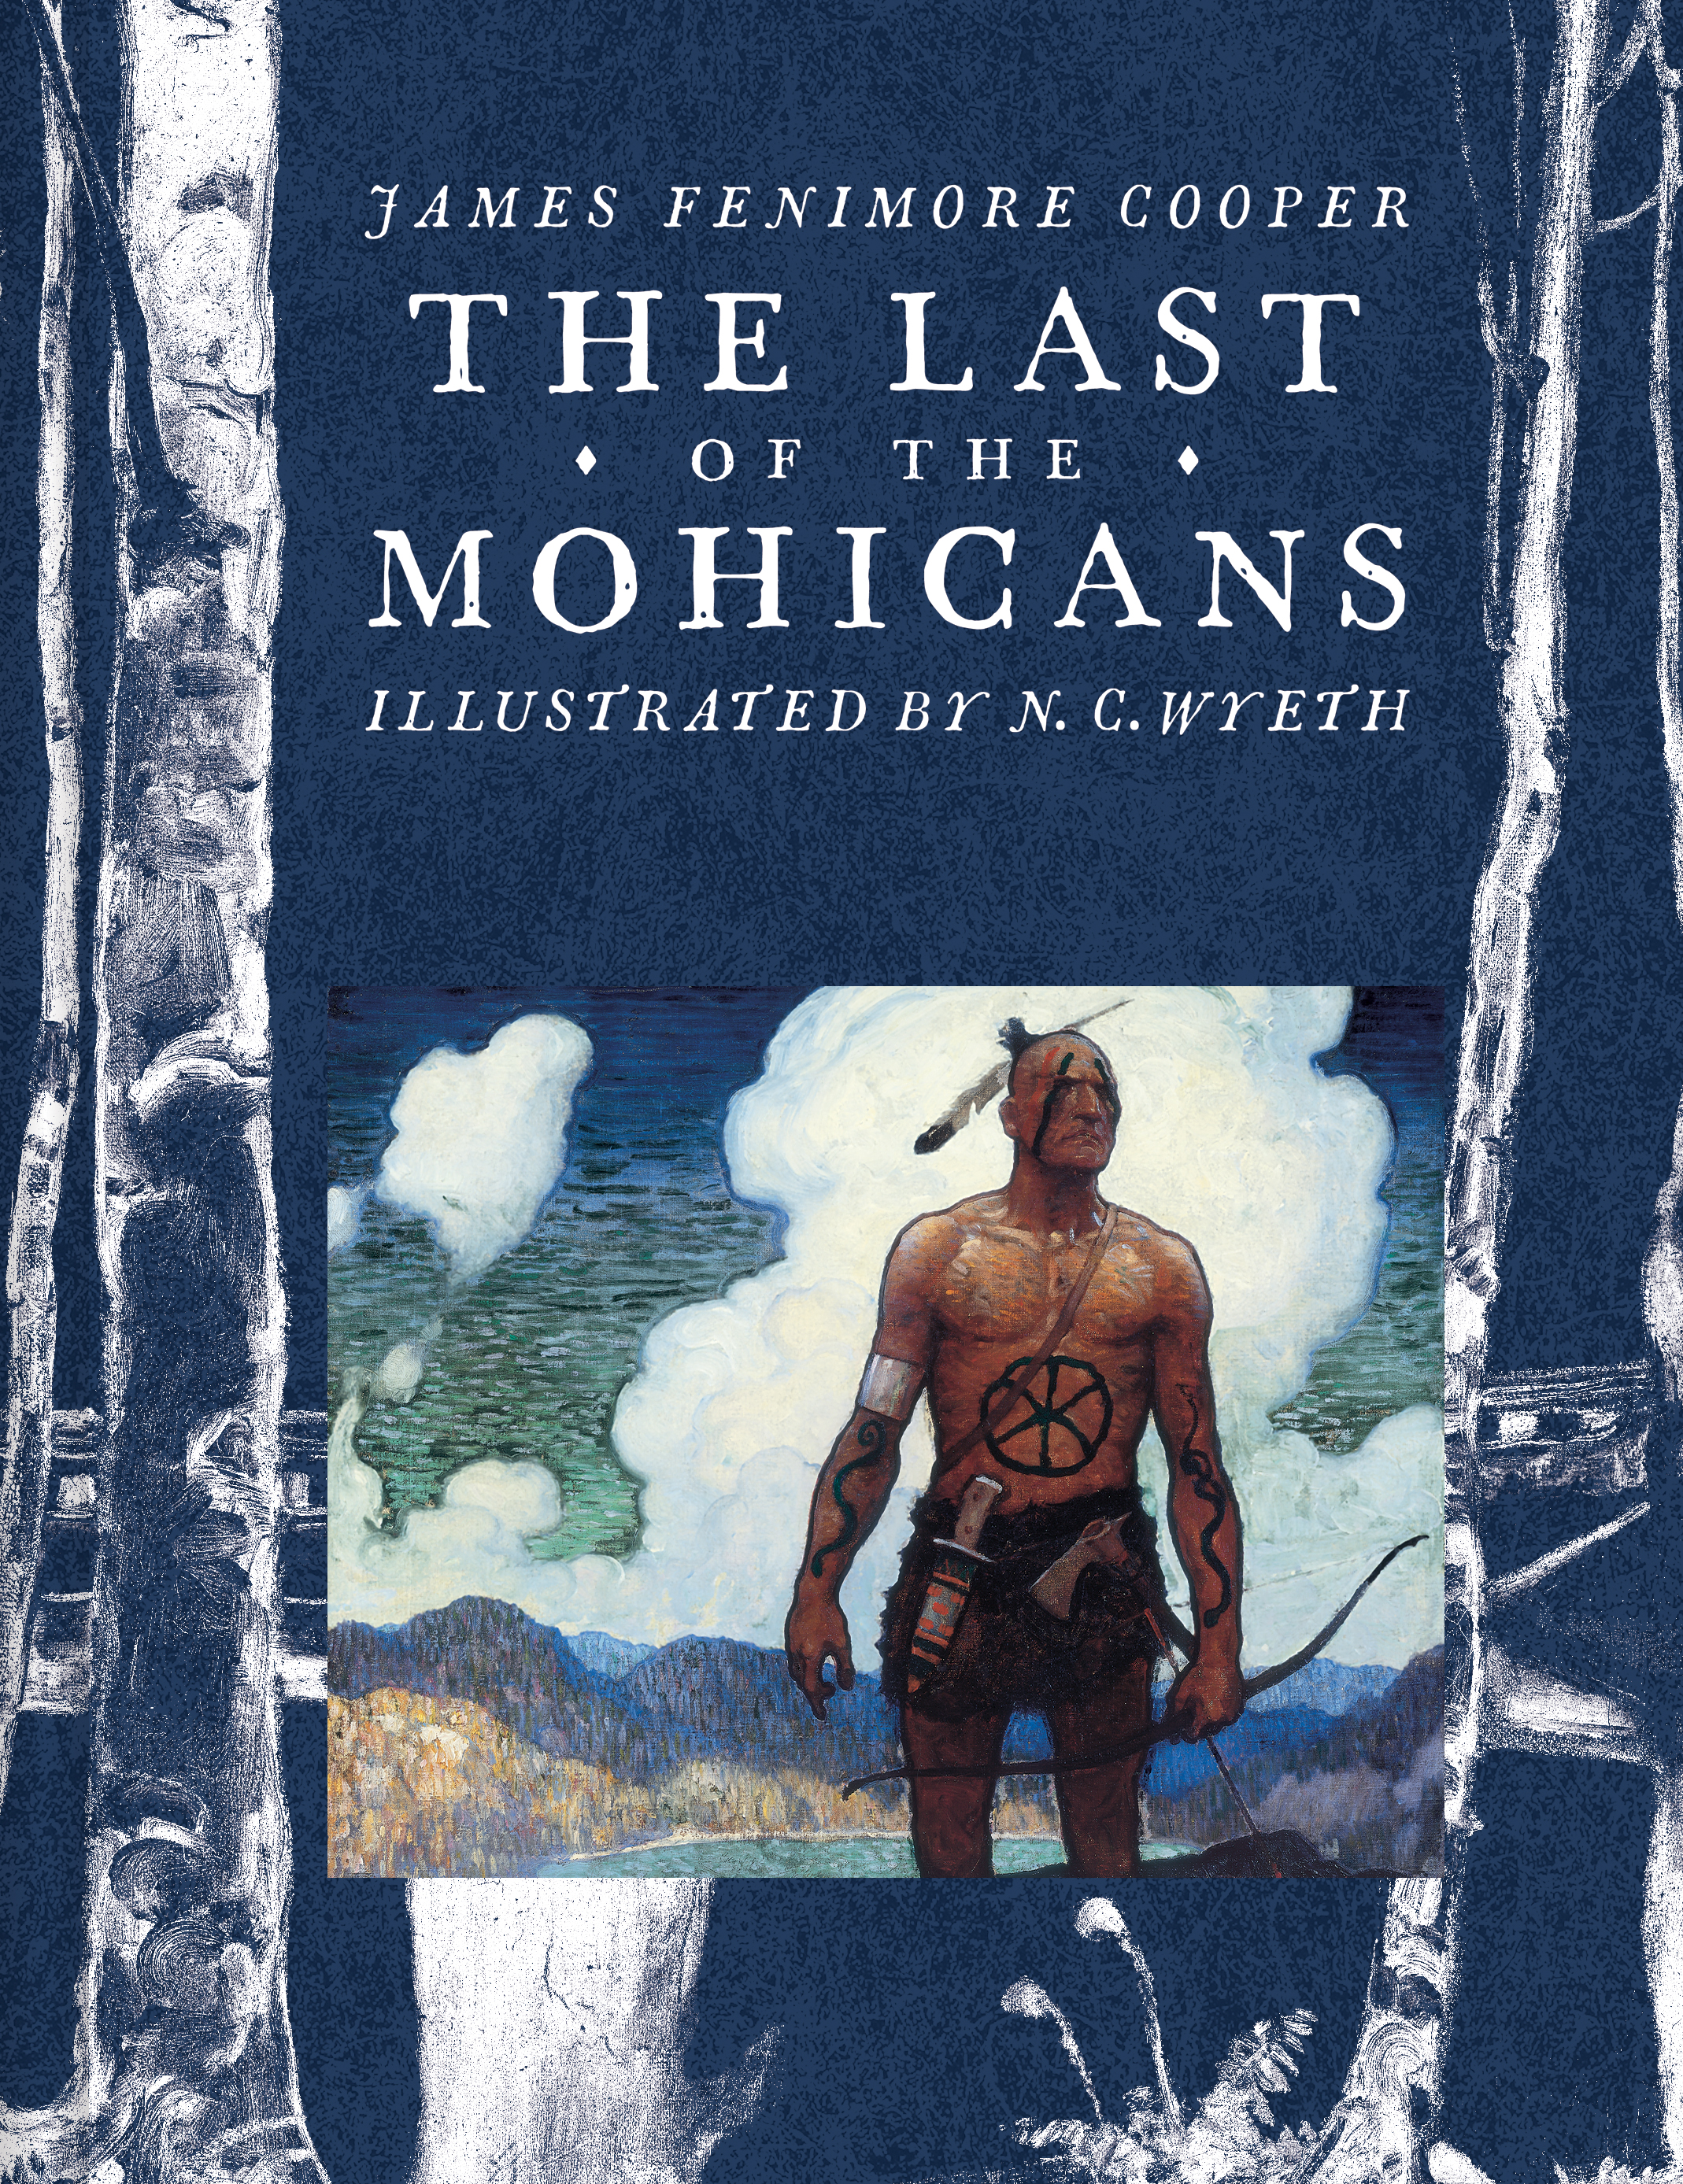 essay last mohicans The last of the mohicans is an action packed, romantic and adventurous drama, set during the peak of the french and indian war in america the english manage to wipe out a large proportion of the indian population however some survive, being only two survivors of the mohican tribe.